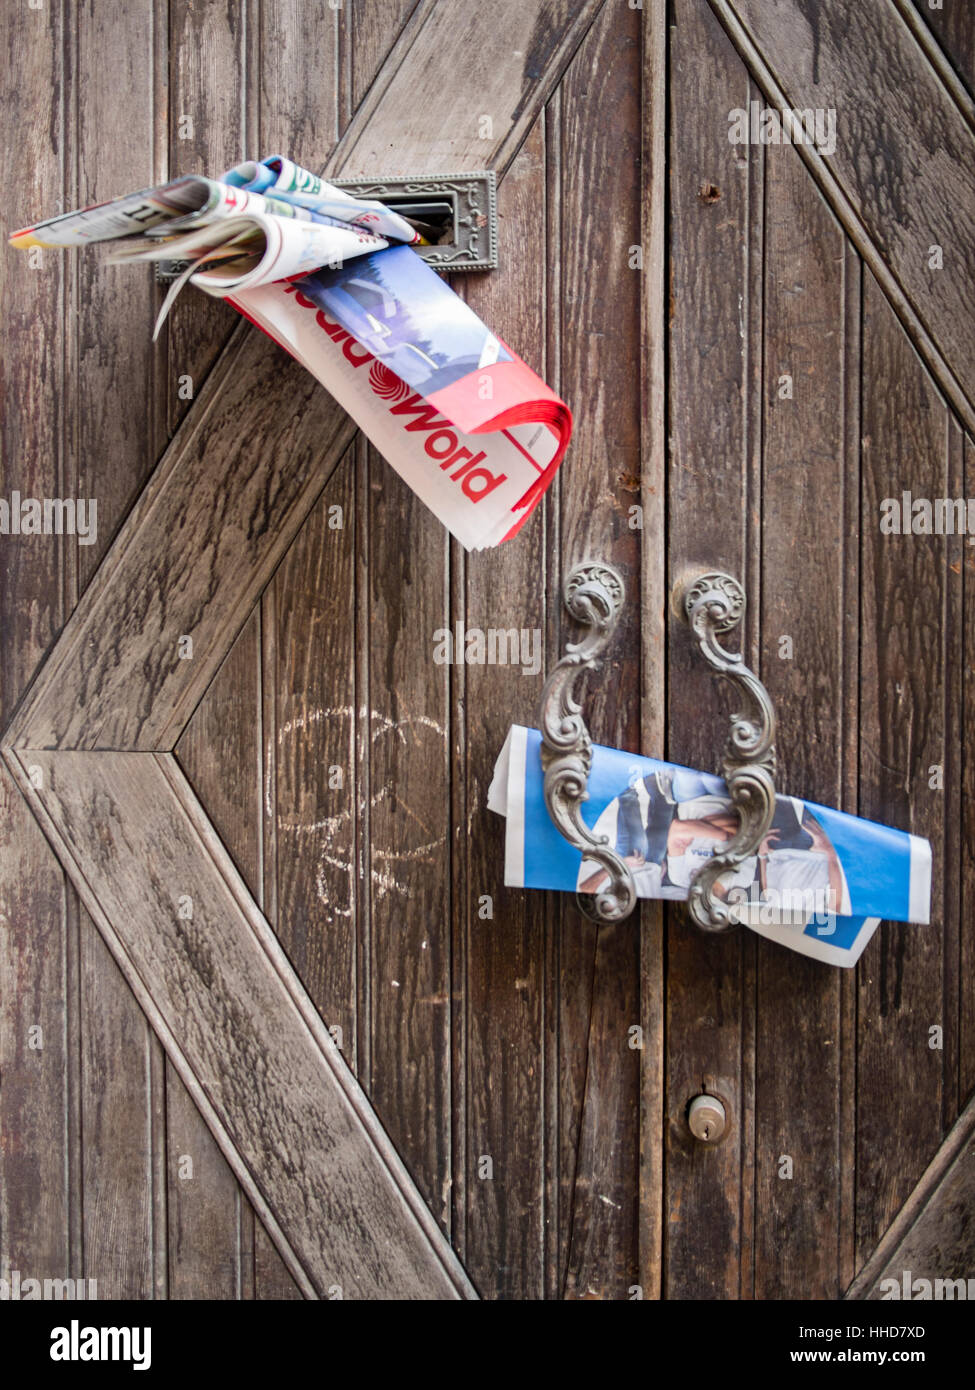 Junk mail in door handle or posto boxes in Italy. - Stock Image